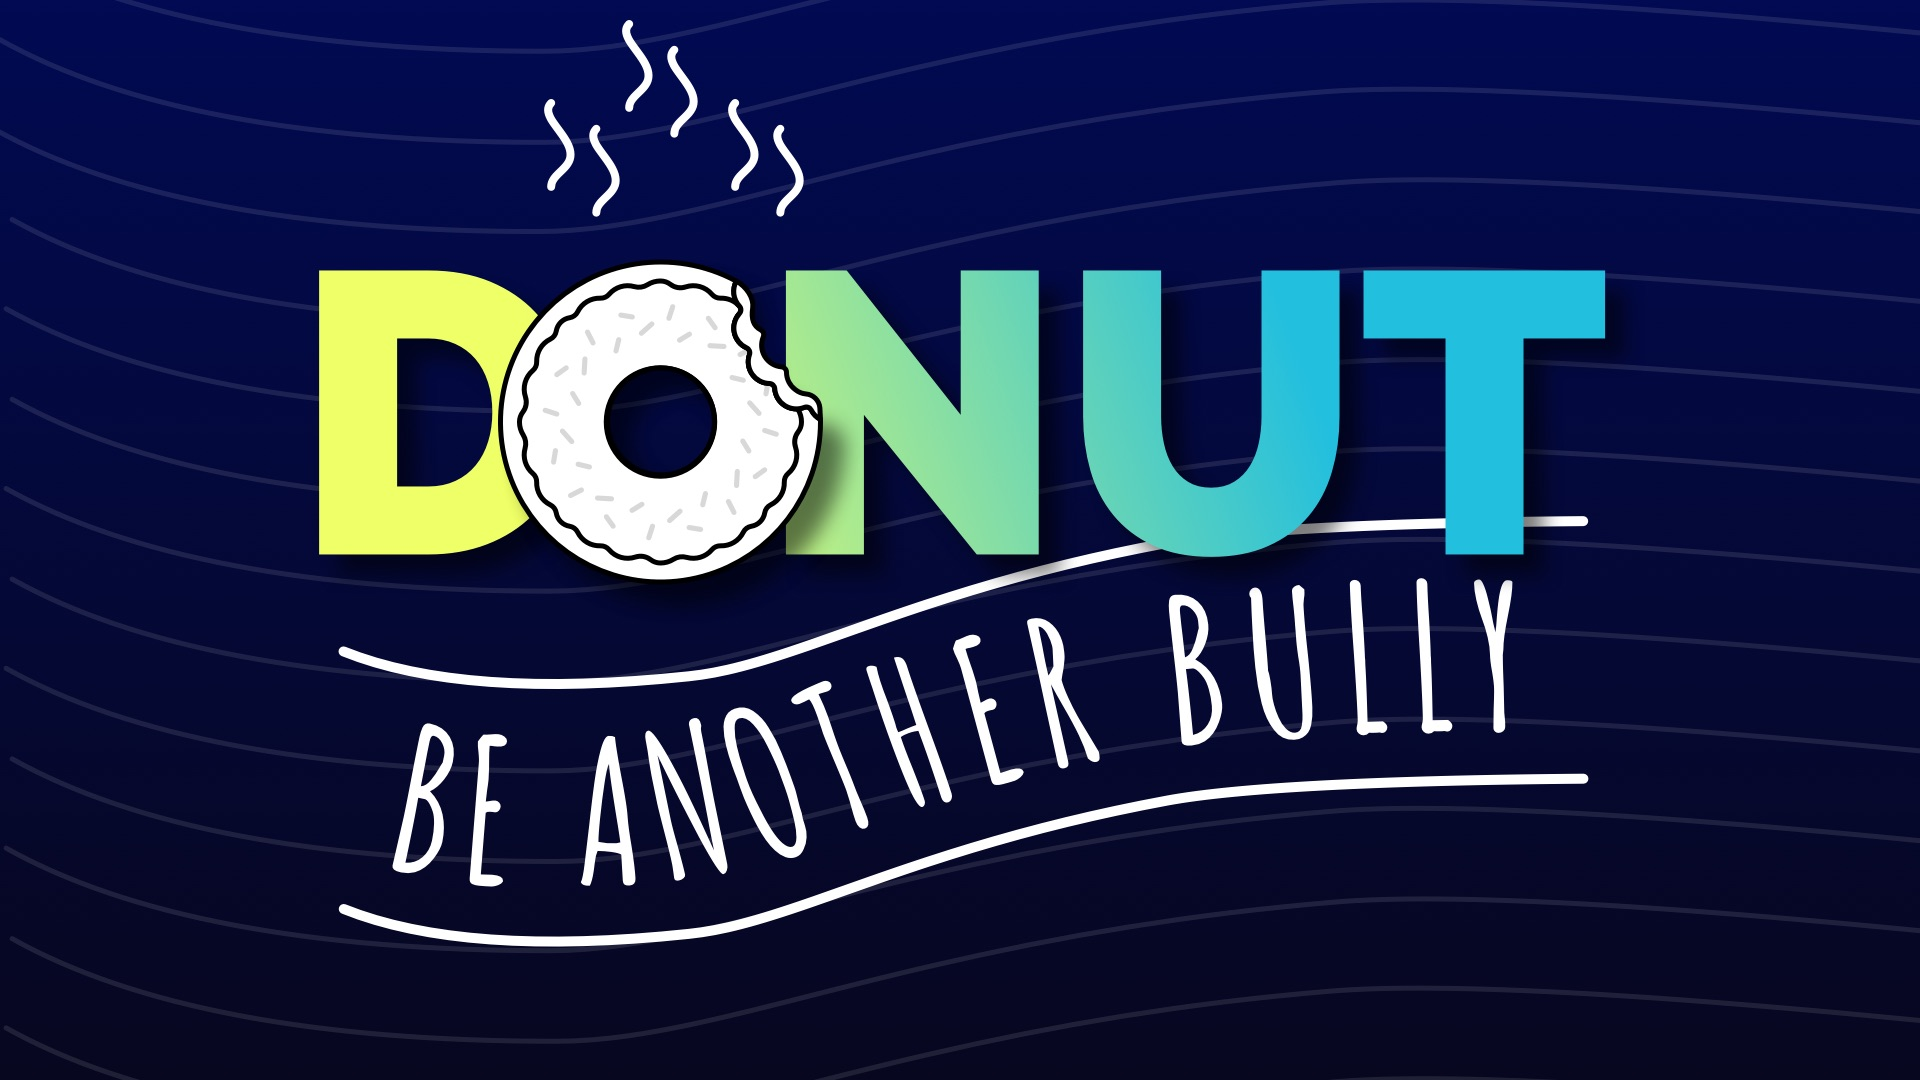 Anti bullying poster that says donut be another bully